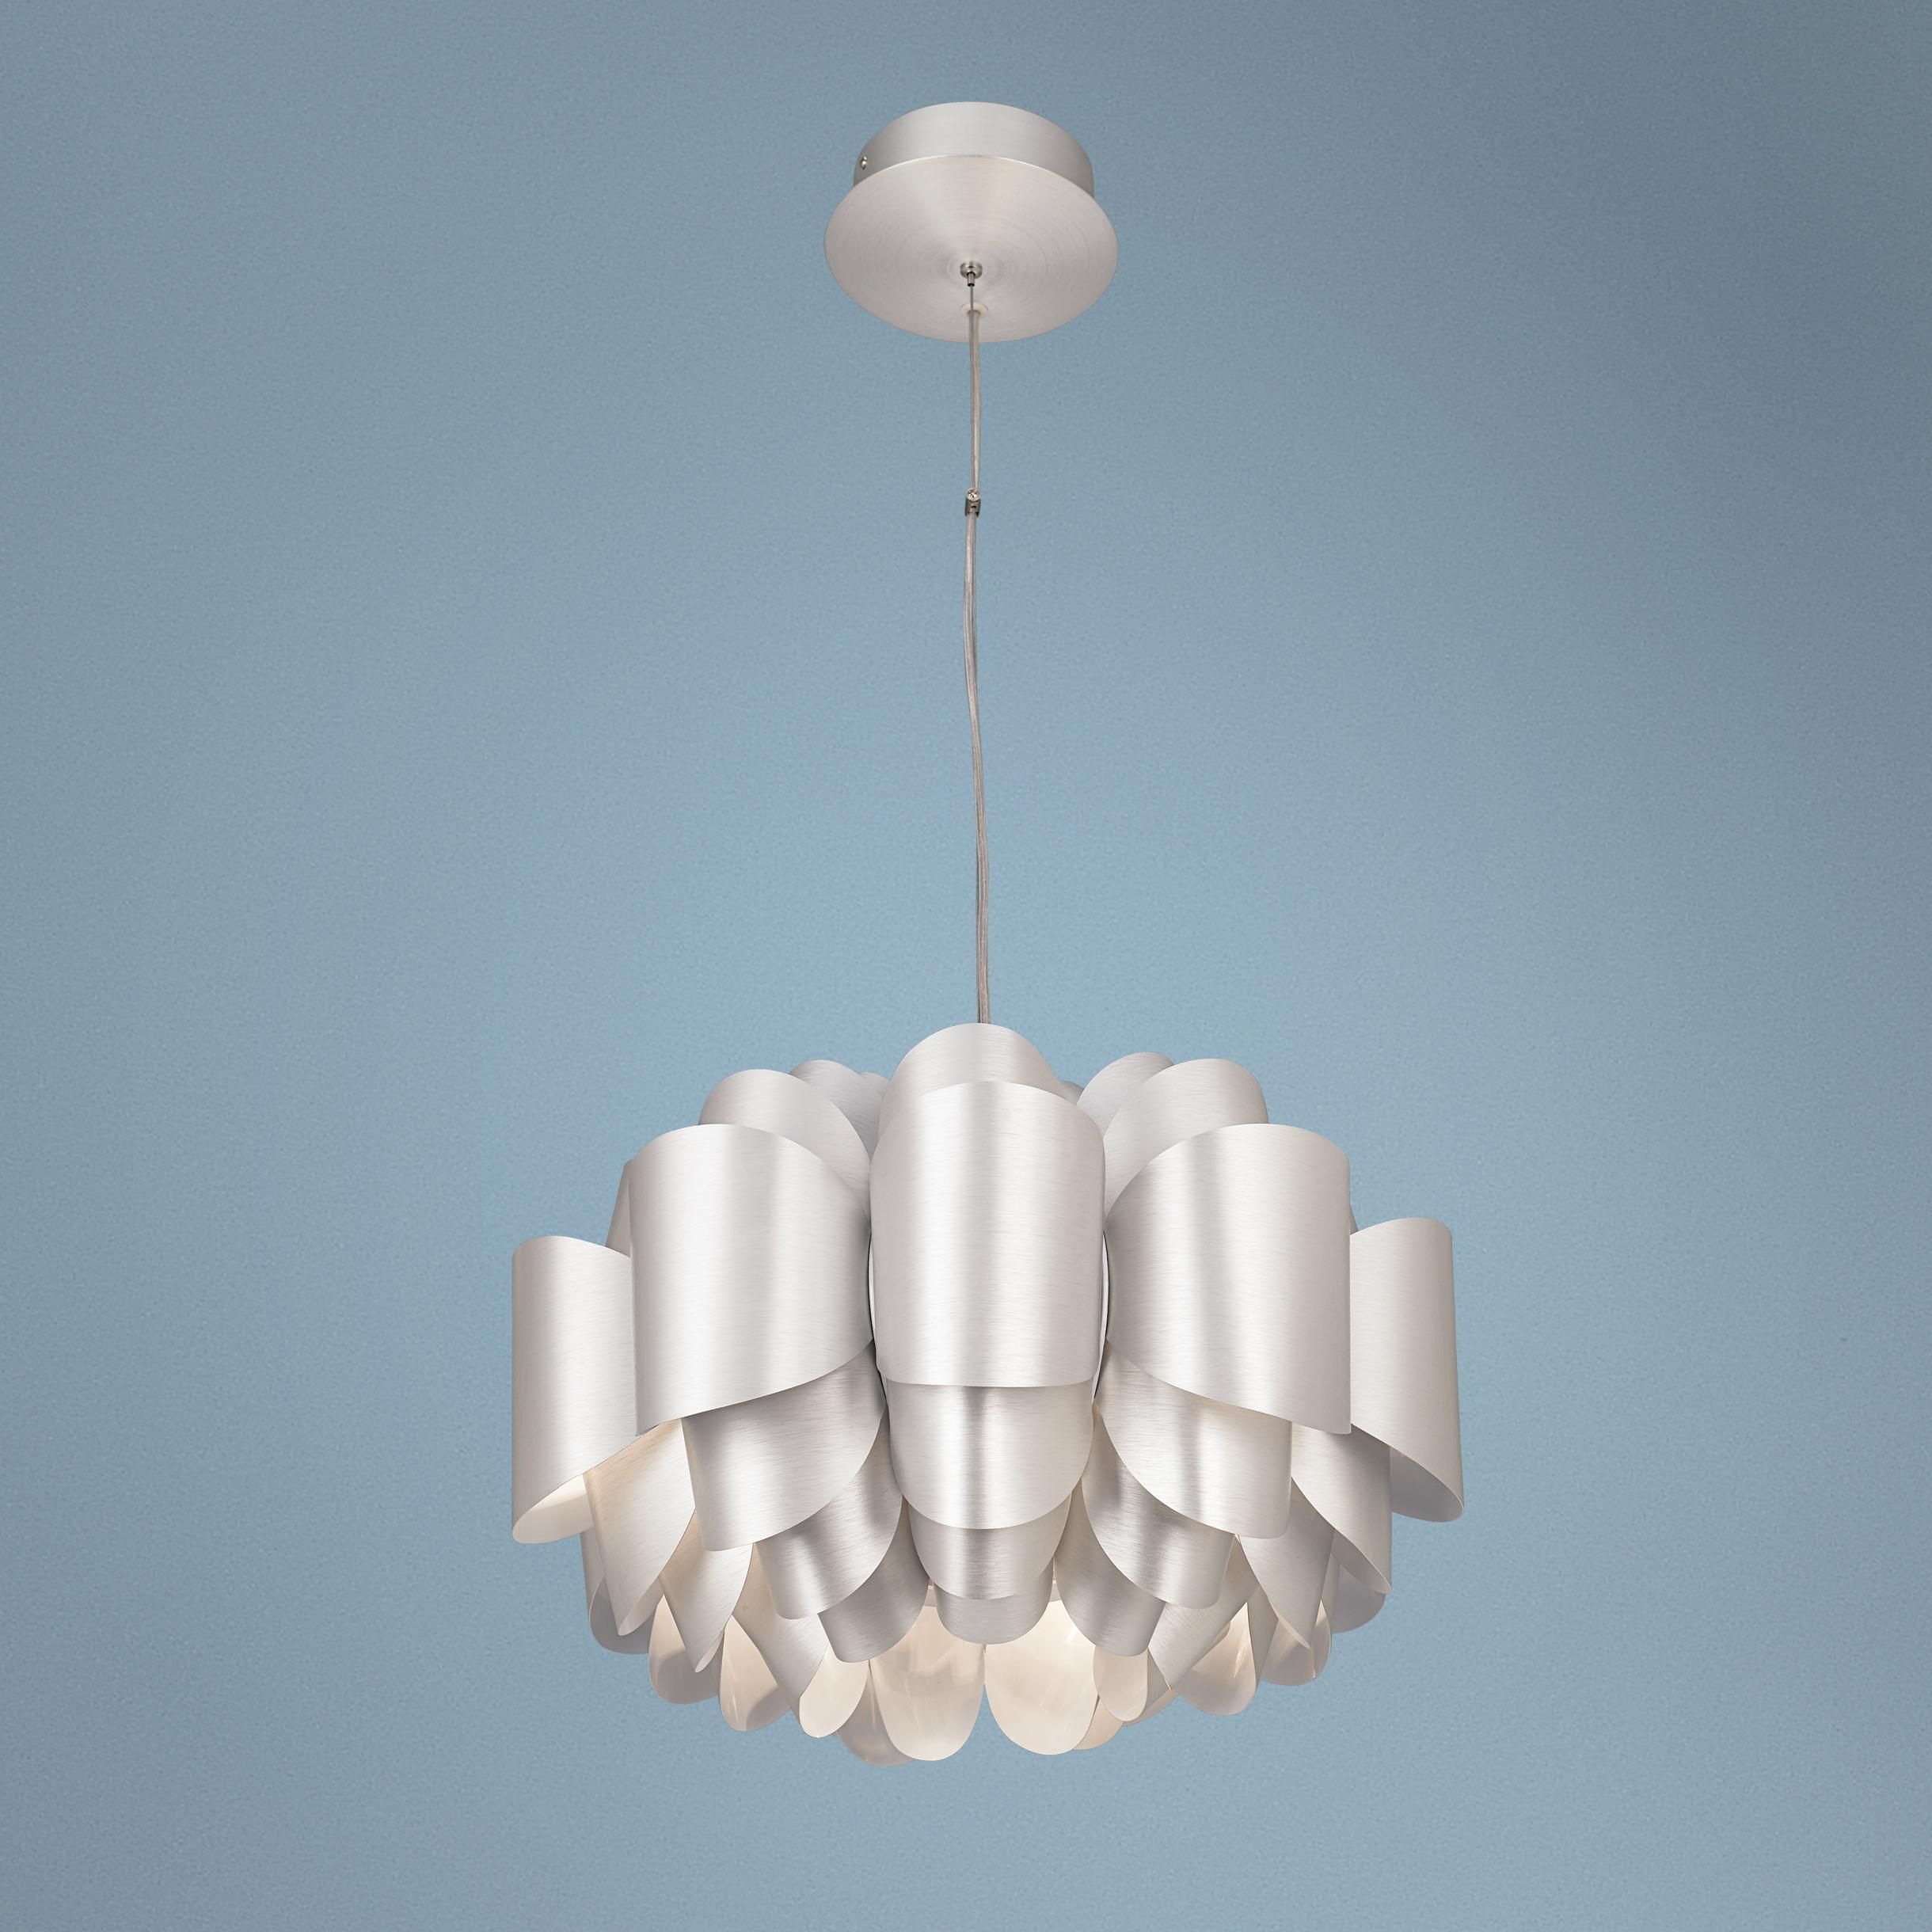 Dining room chandelier possini euro design aluminum lotus for Possini lighting website